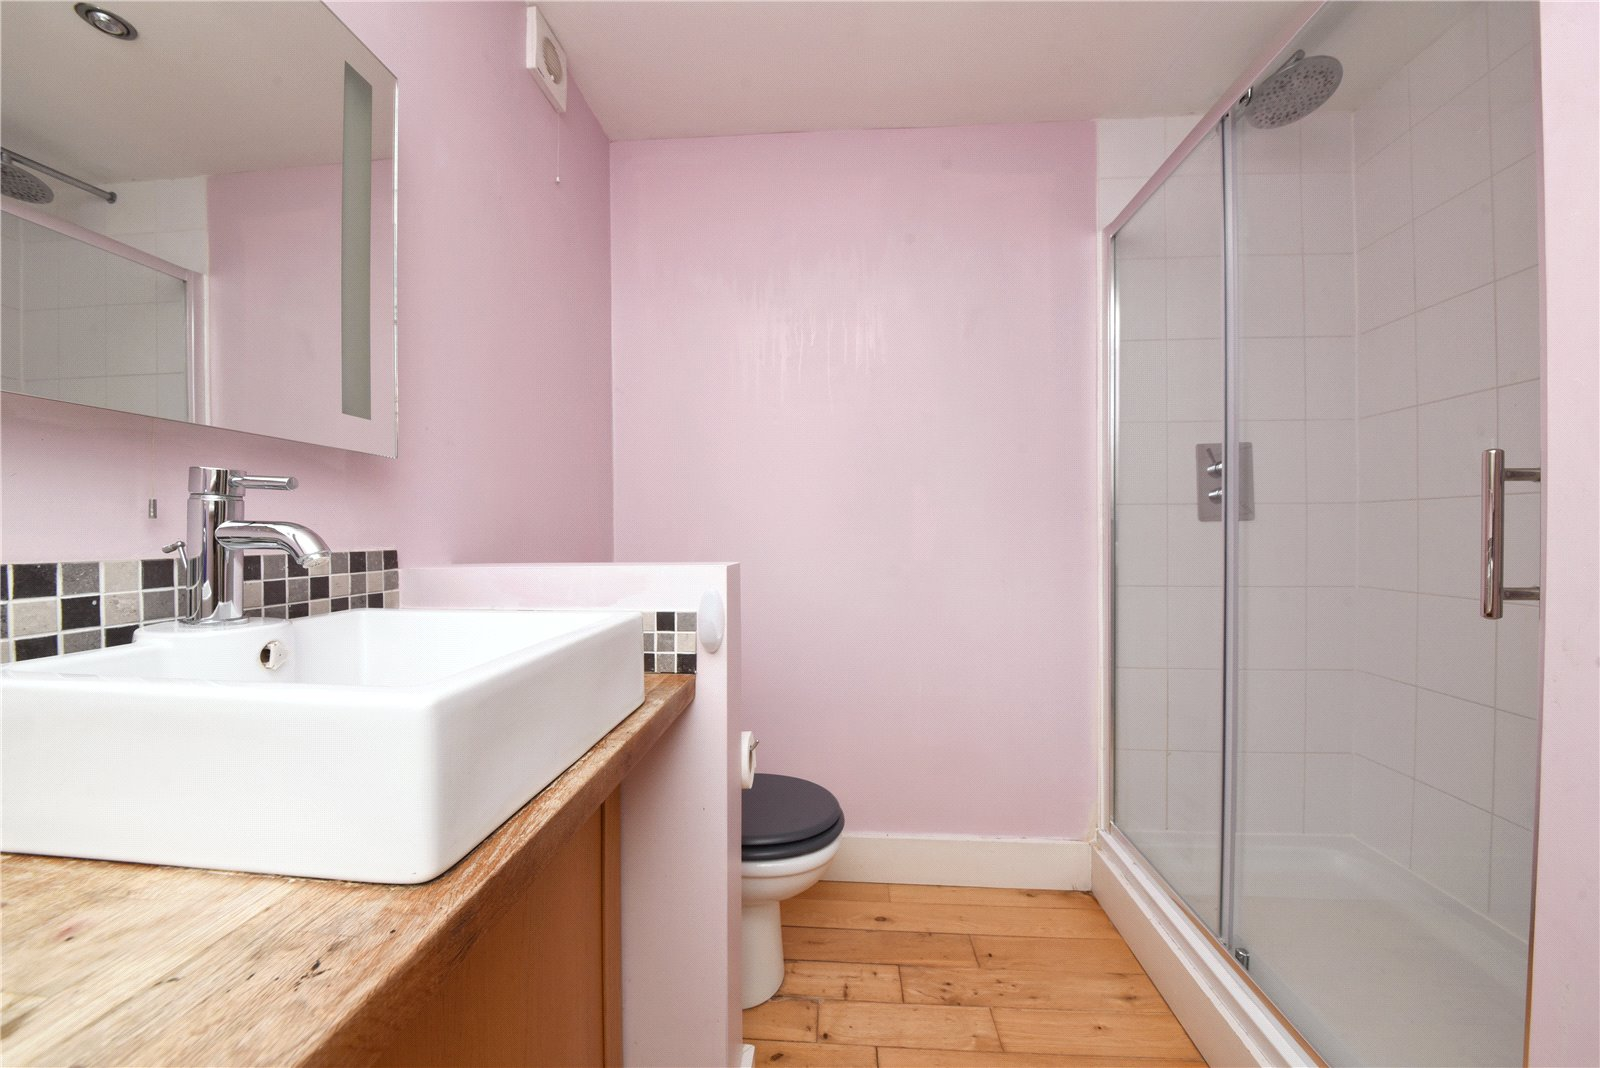 4 bed house to rent in Longland Drive, Totteridge  - Property Image 12